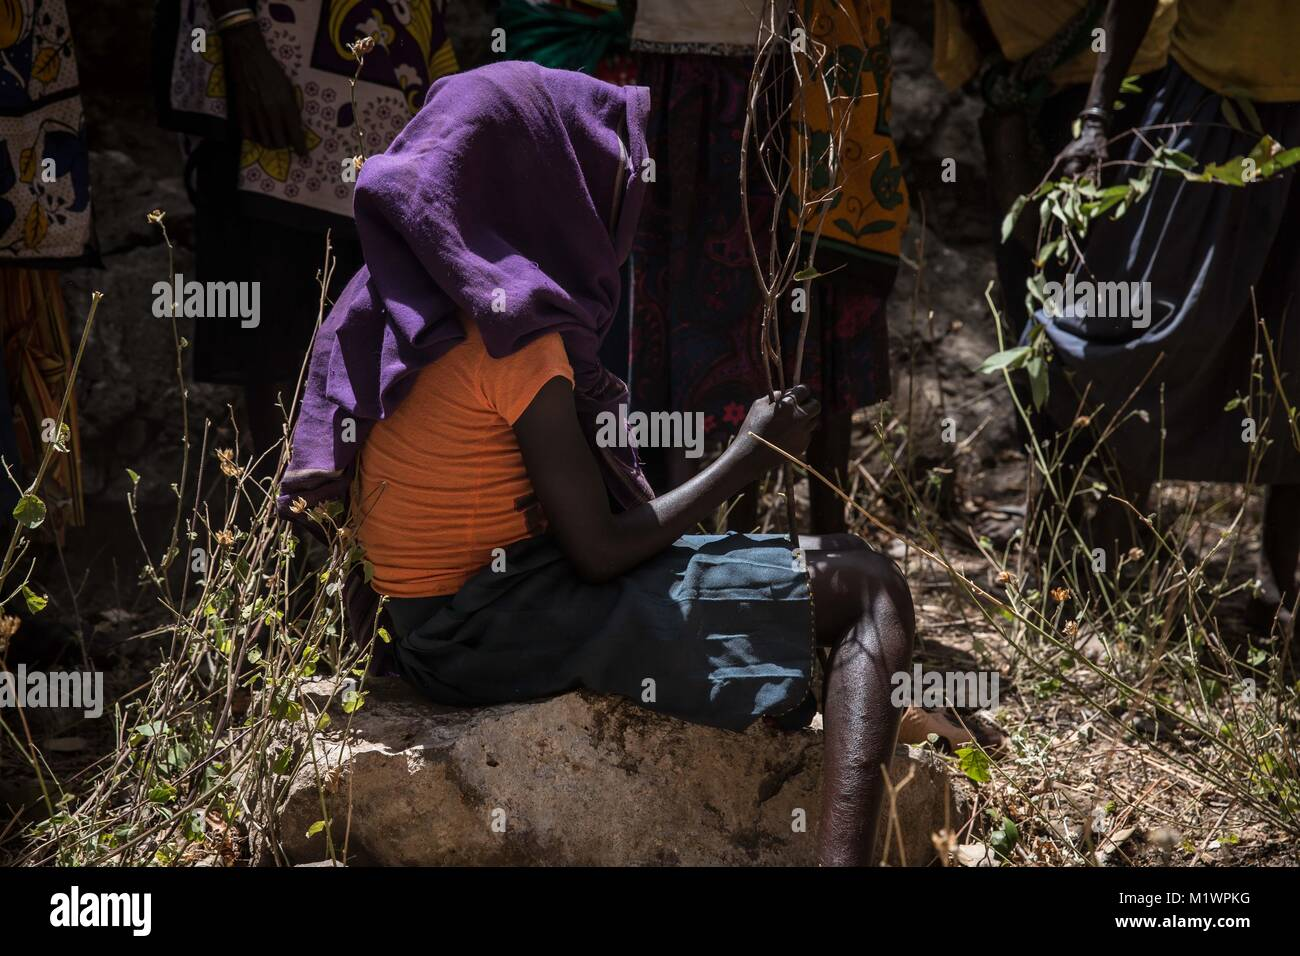 Karamoja, Uganda. 31st Jan, 2018. A young girl takes part in a reenaction of the ceremony Pokot tribal people perform - Stock Image